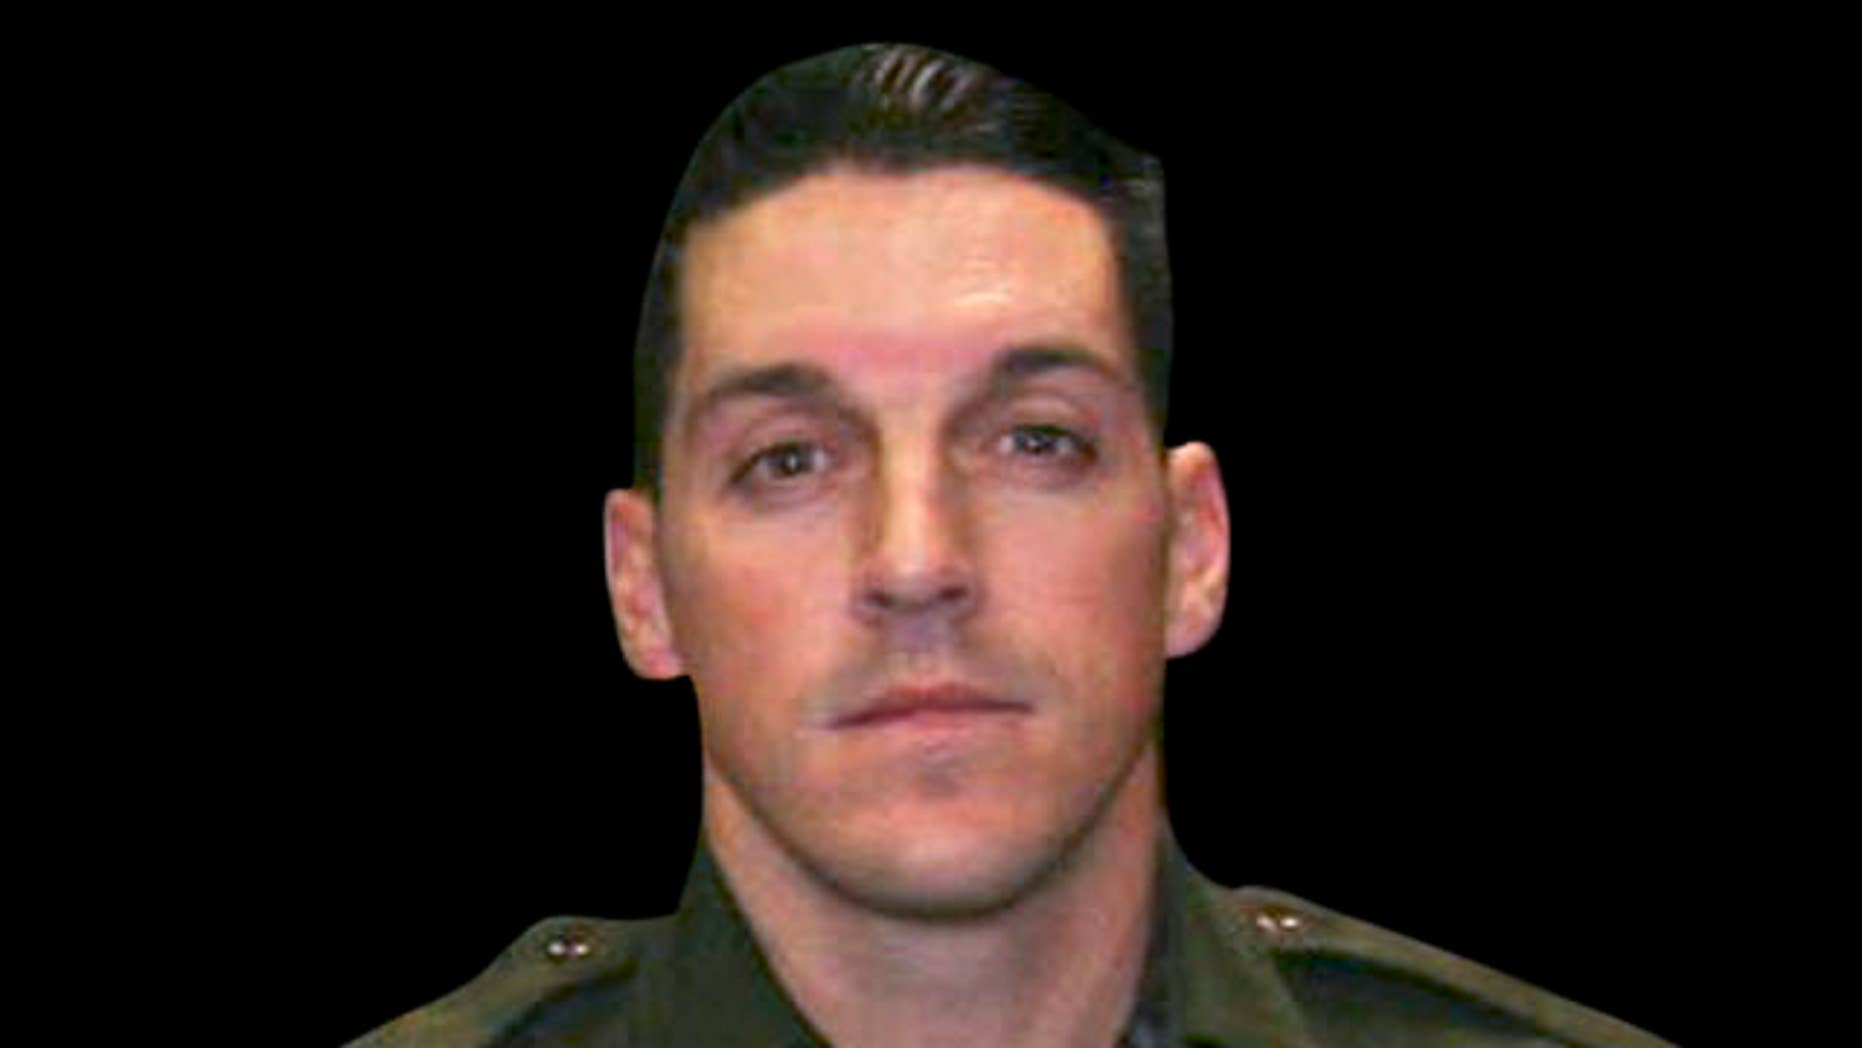 FILE:  Undated photo provided by U.S. Customs and Border Protection of U.S. Border Patrol agent Brian A. Terry. Terry was fatally shot north of the Arizona-Mexico border while trying to catch bandits who target illegal immigrants in December, 2010.